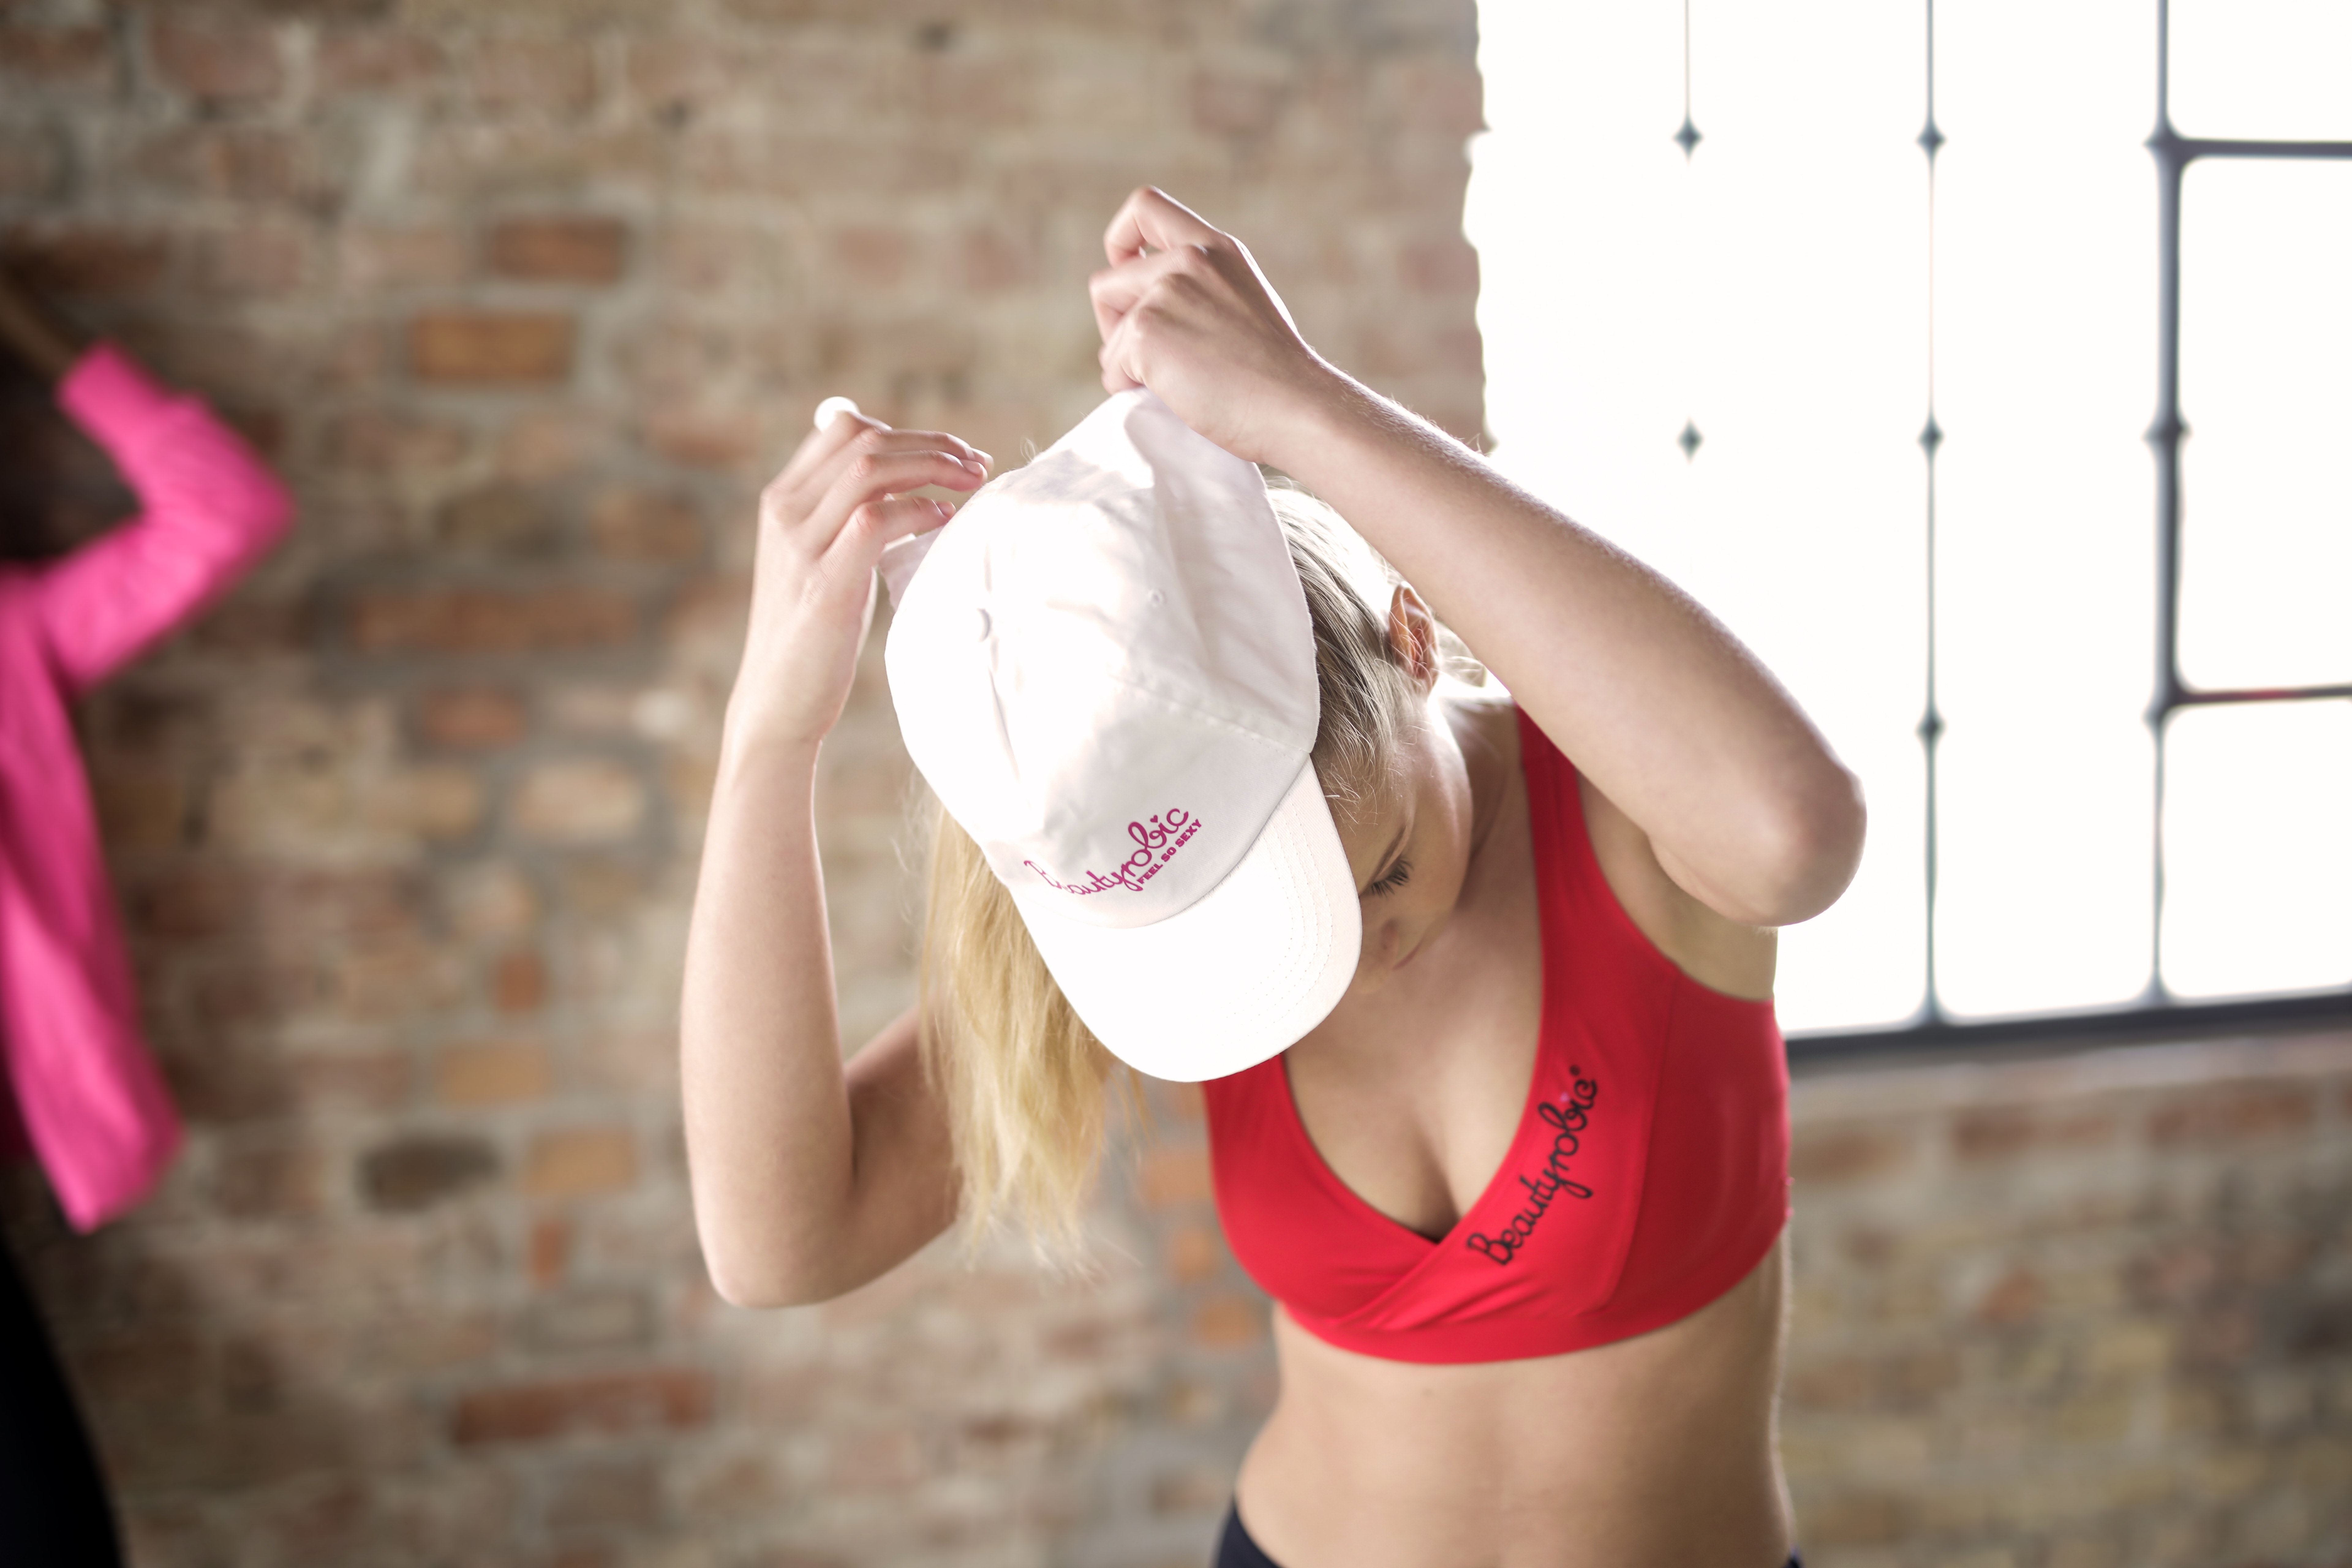 Woman Wearing Red Crop Top and White Cap, Active, Workout, Women, Woman, HQ Photo